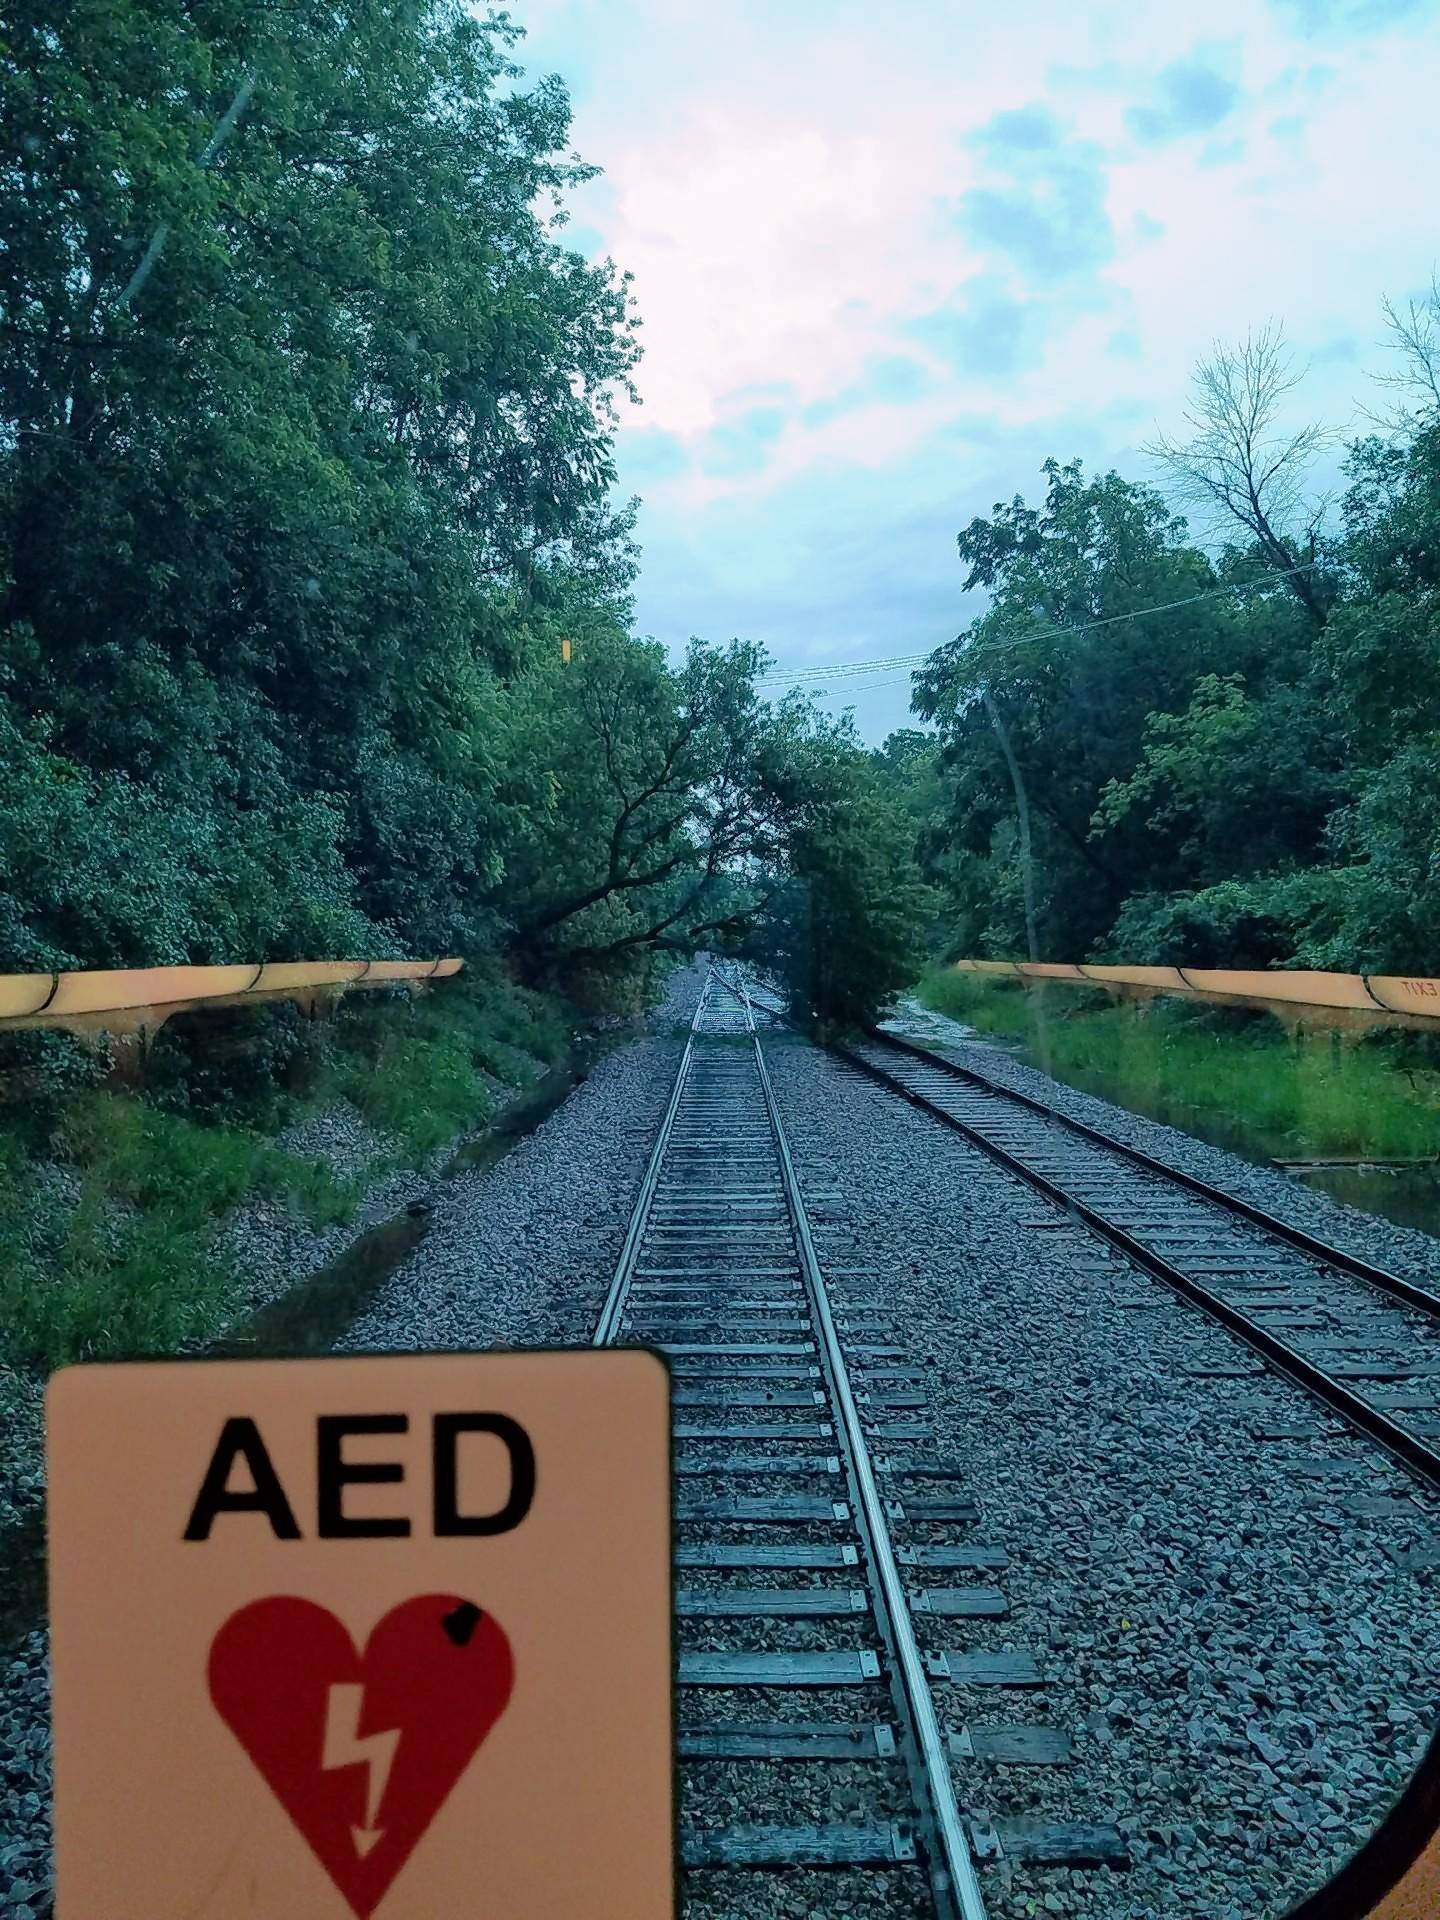 Metra resuming evening service in Lake County after tree fell on tracks